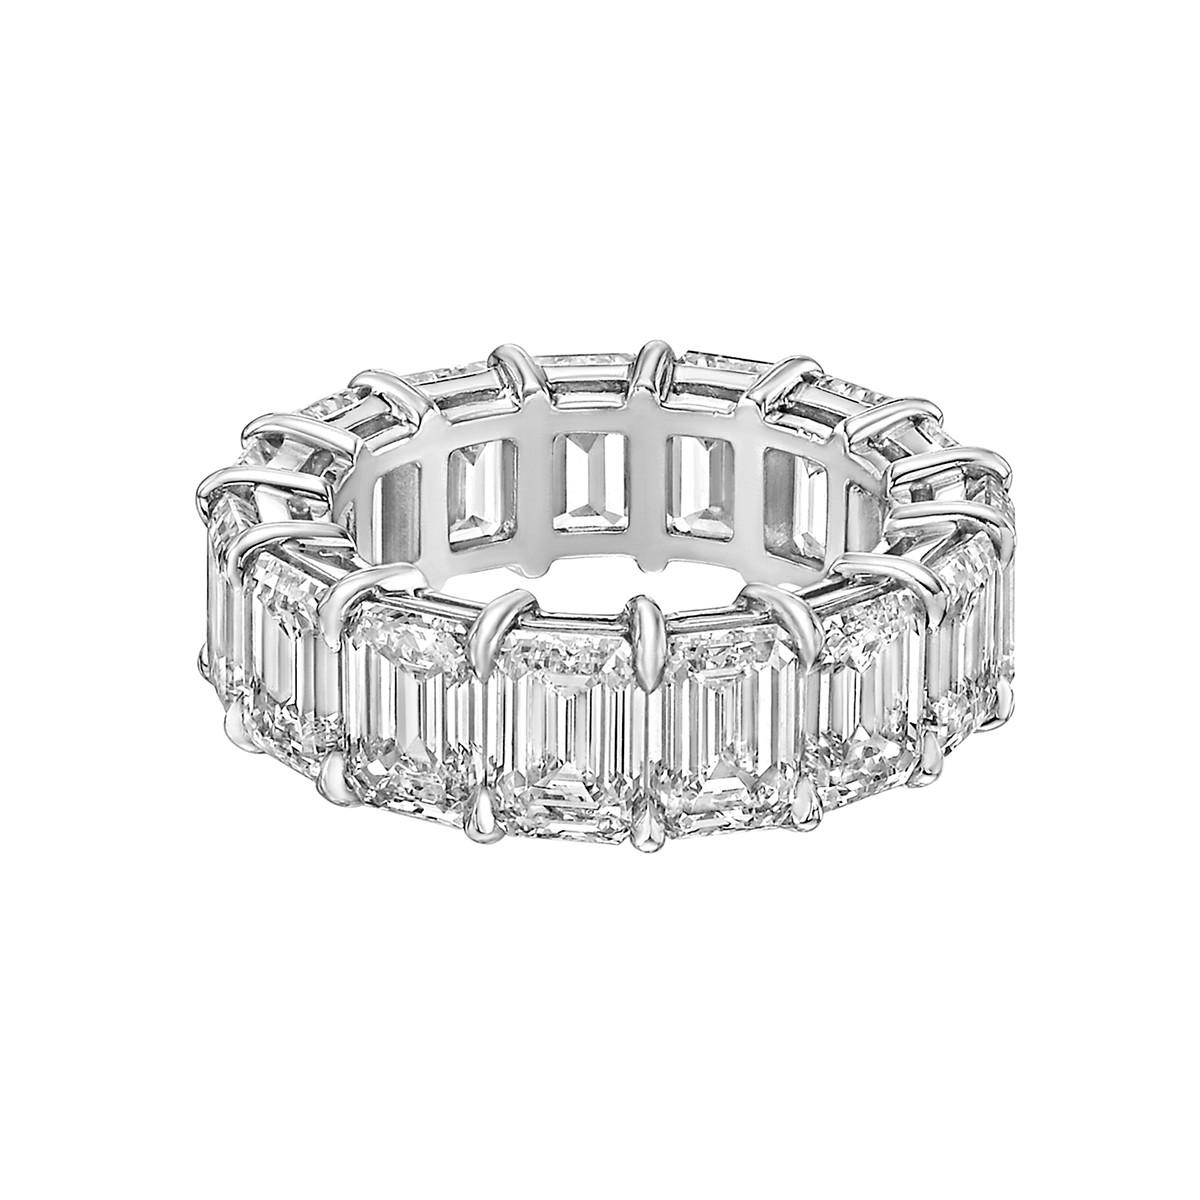 micropave diamond popular of top the wedding carat blog bands ritani eternity most rings band